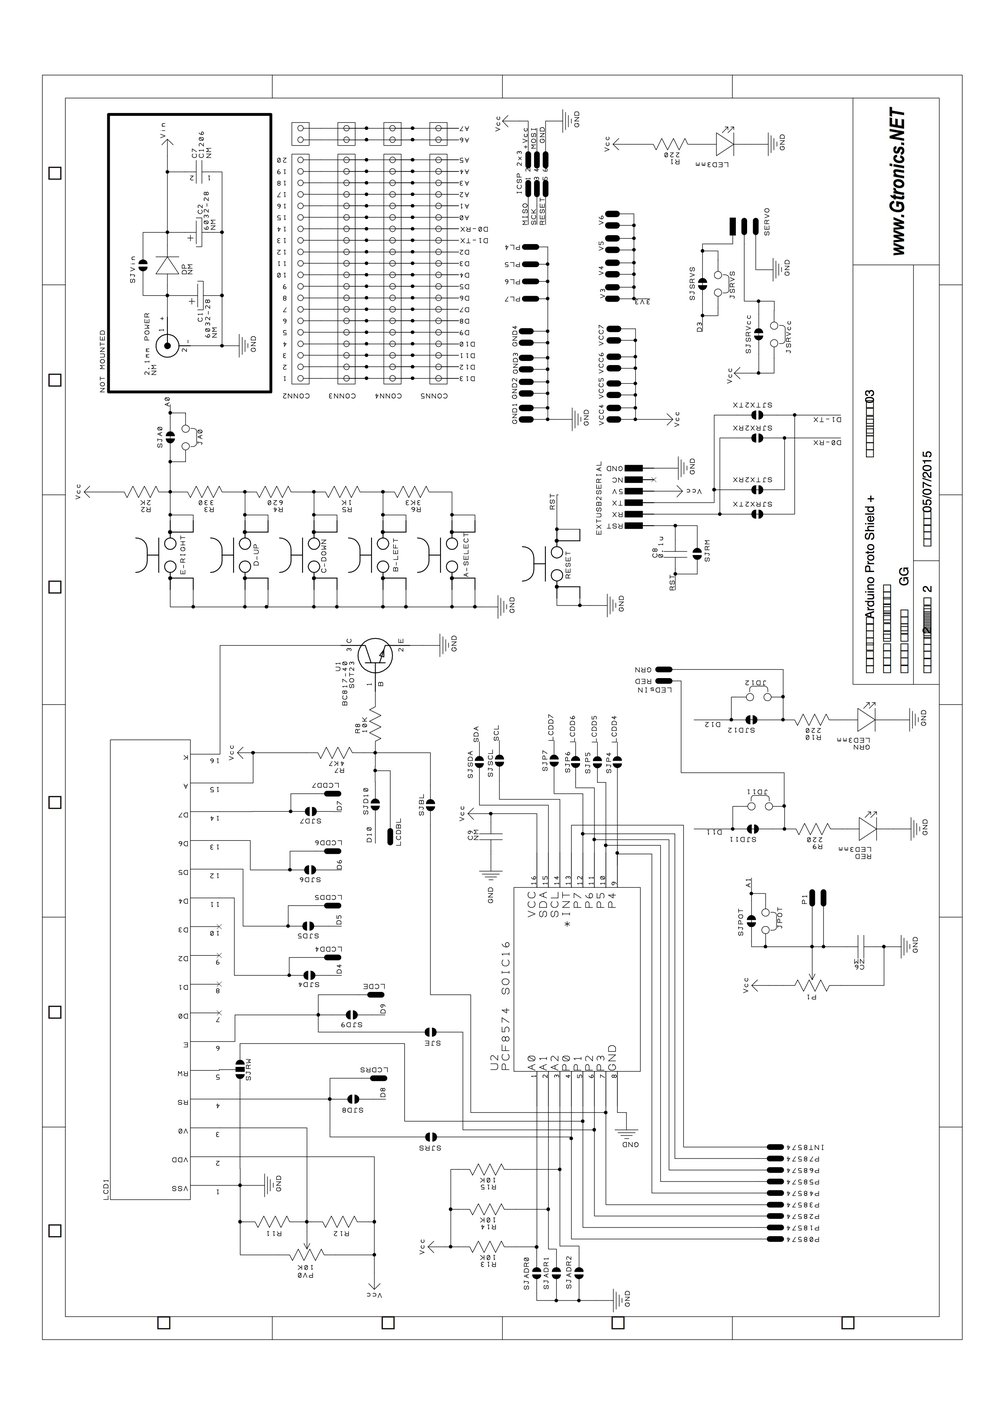 Download  circuit diagram for Protoshield Plus (PDF, 0.29MB)